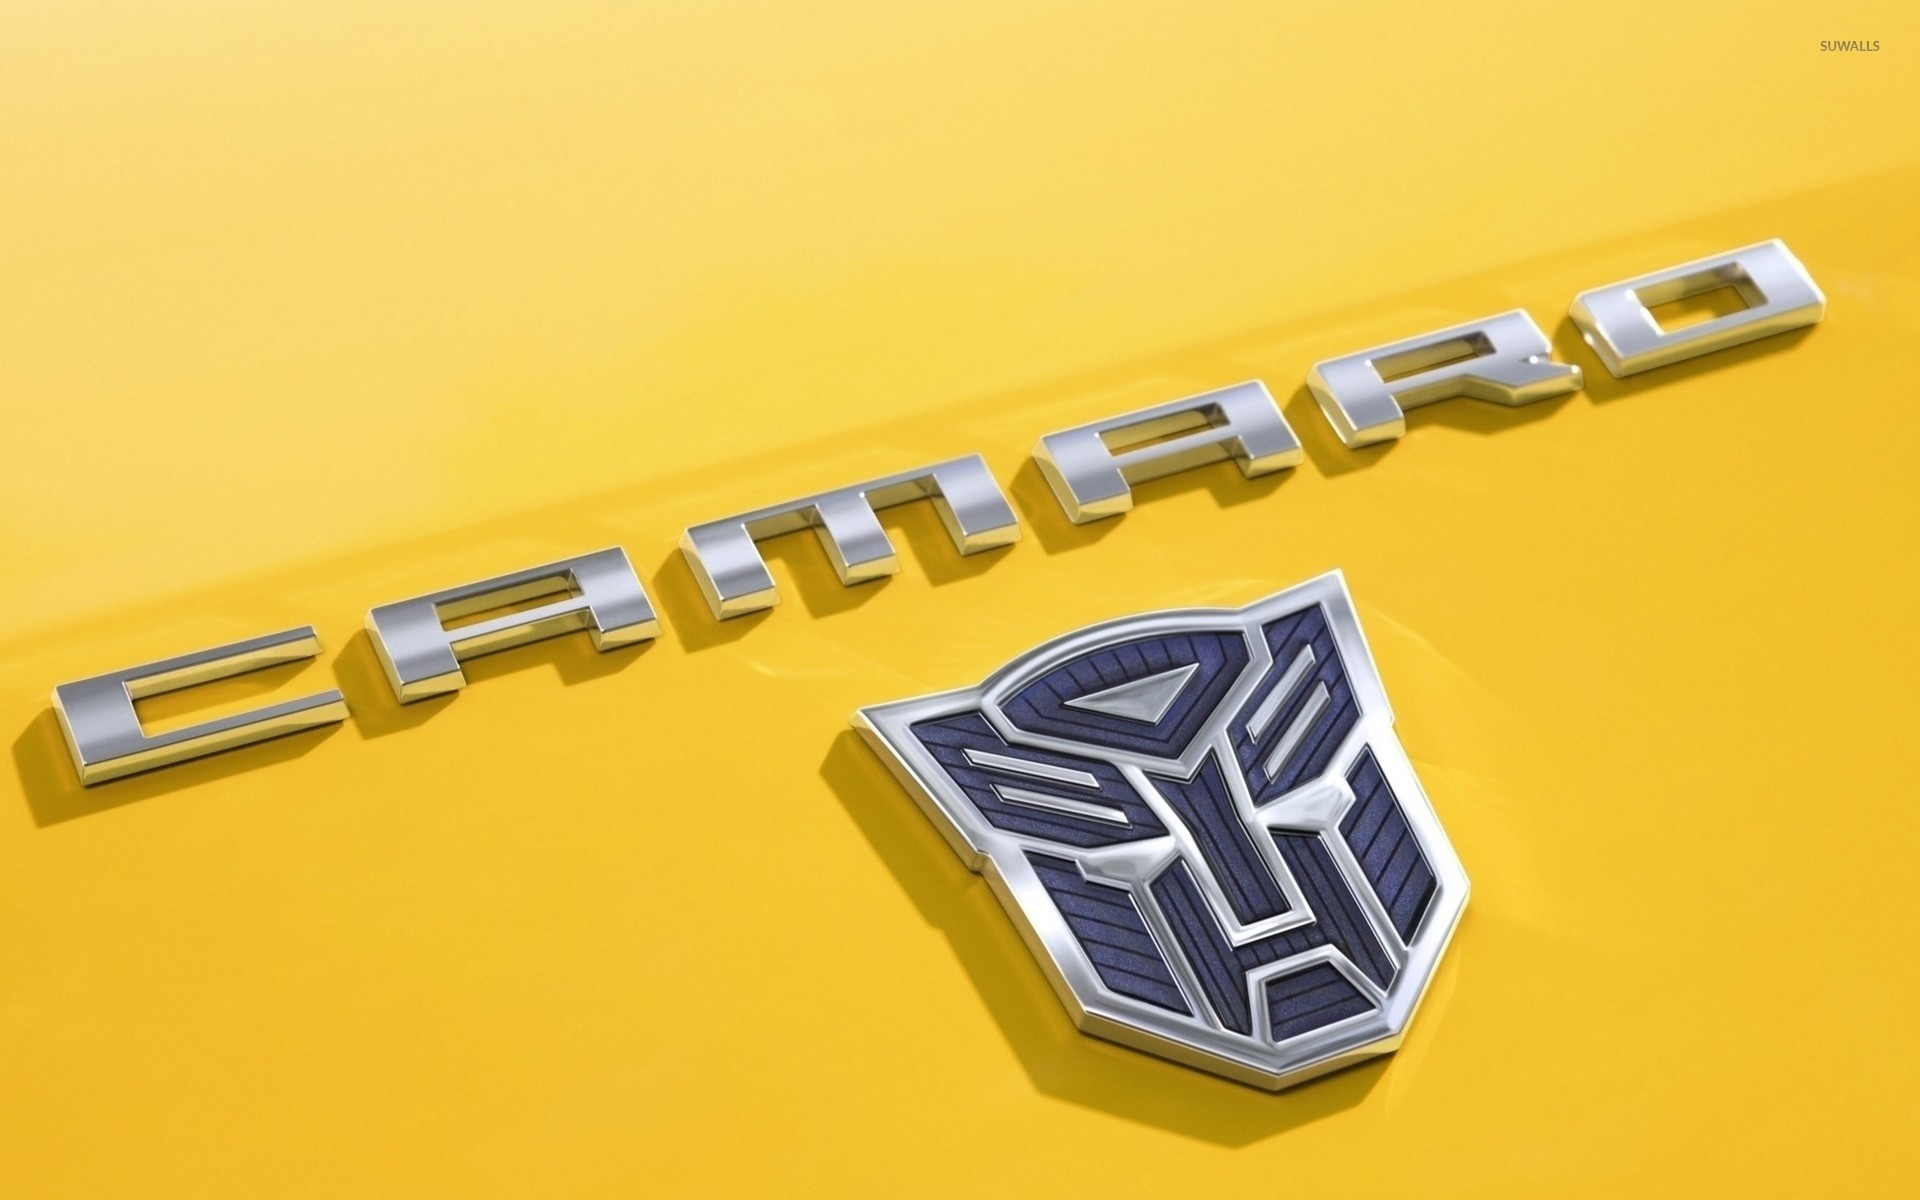 1920x1200 chevrolet camaro logo in transformers wallpaper – car wallpapers. Download  Image 1920 X 1200